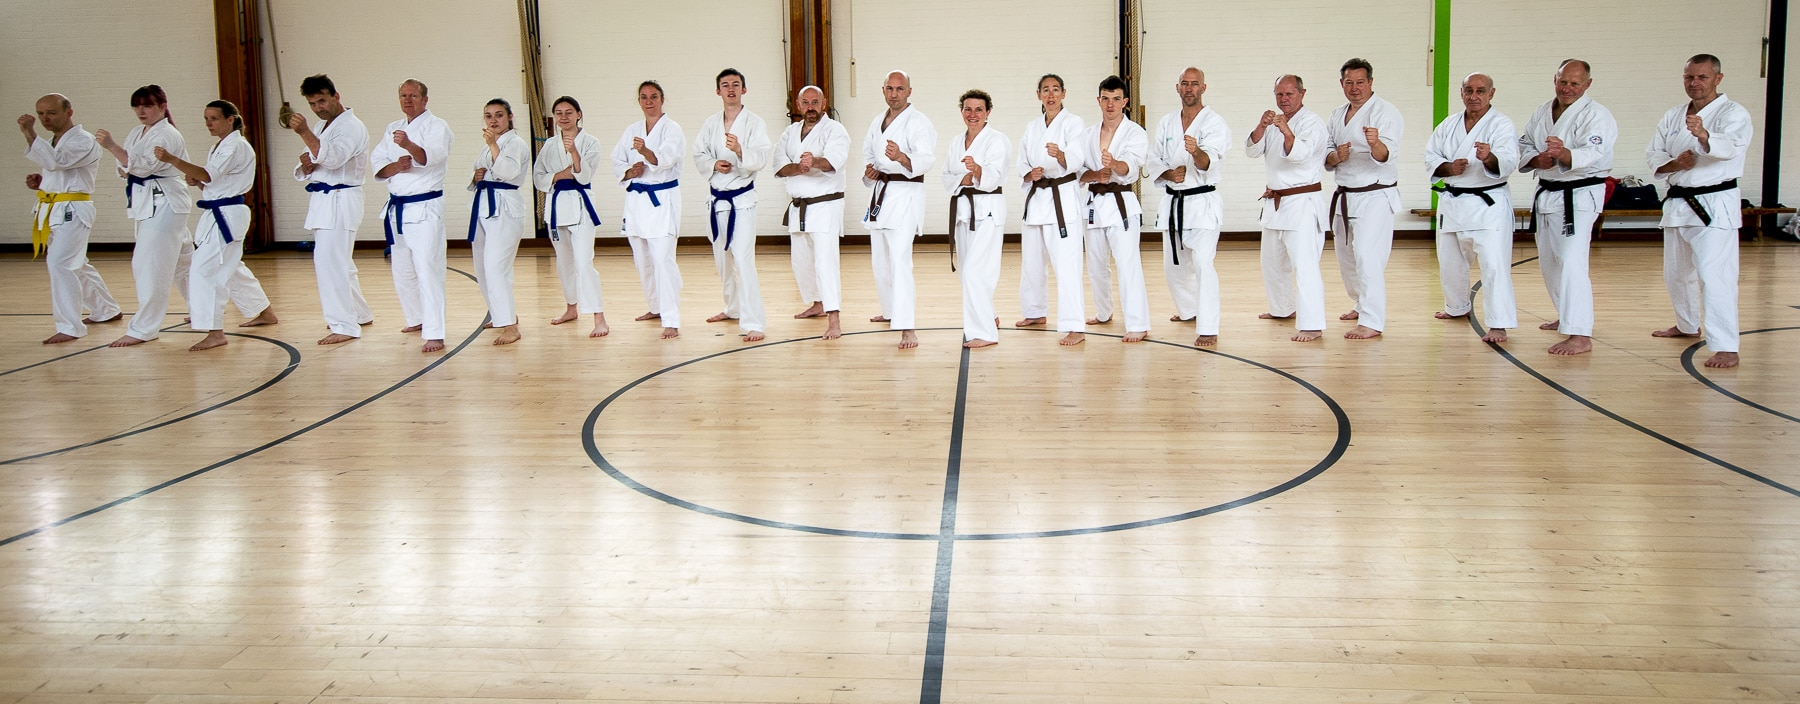 Wado-Ryu Karate Do Ju-Jutsu Kempo martial arts classes in Aldershot, Farnham, Guildford & Haslemere